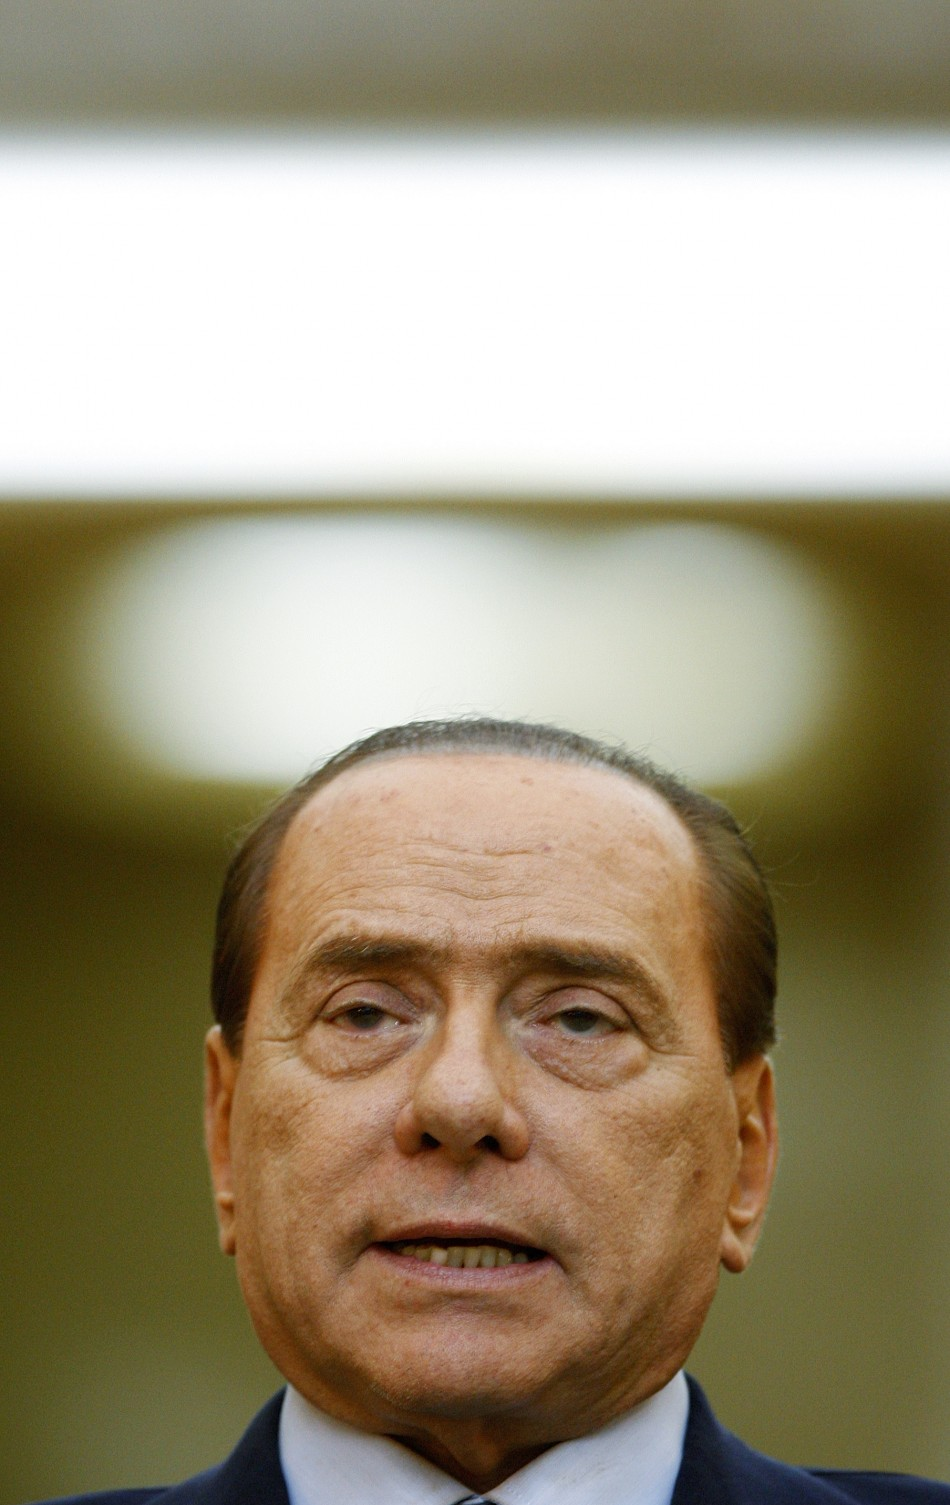 taly's Prime Minister Berlusconi addresses the media during a joint news conference with Romania's Prime Minister Boc at Victoria Palace in Bucharest